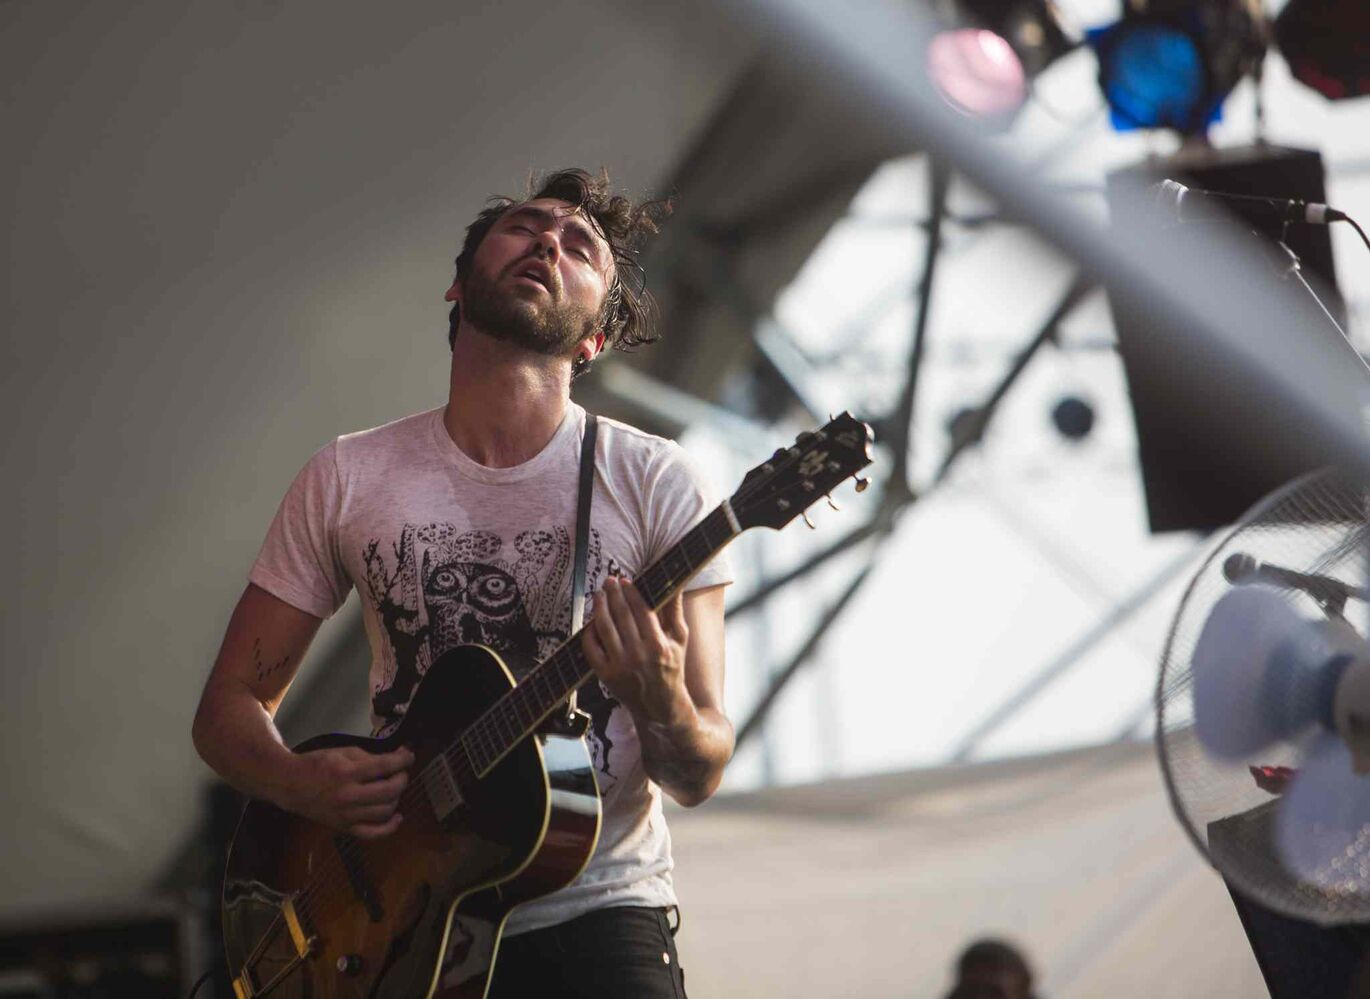 Shakey Graves plays at the Winnipeg Folk Festival in Birds Hill Park on Friday, July 10, 2015.   Mikaela MacKenzie / Winnipeg Free Press (Winnipeg Free Press)